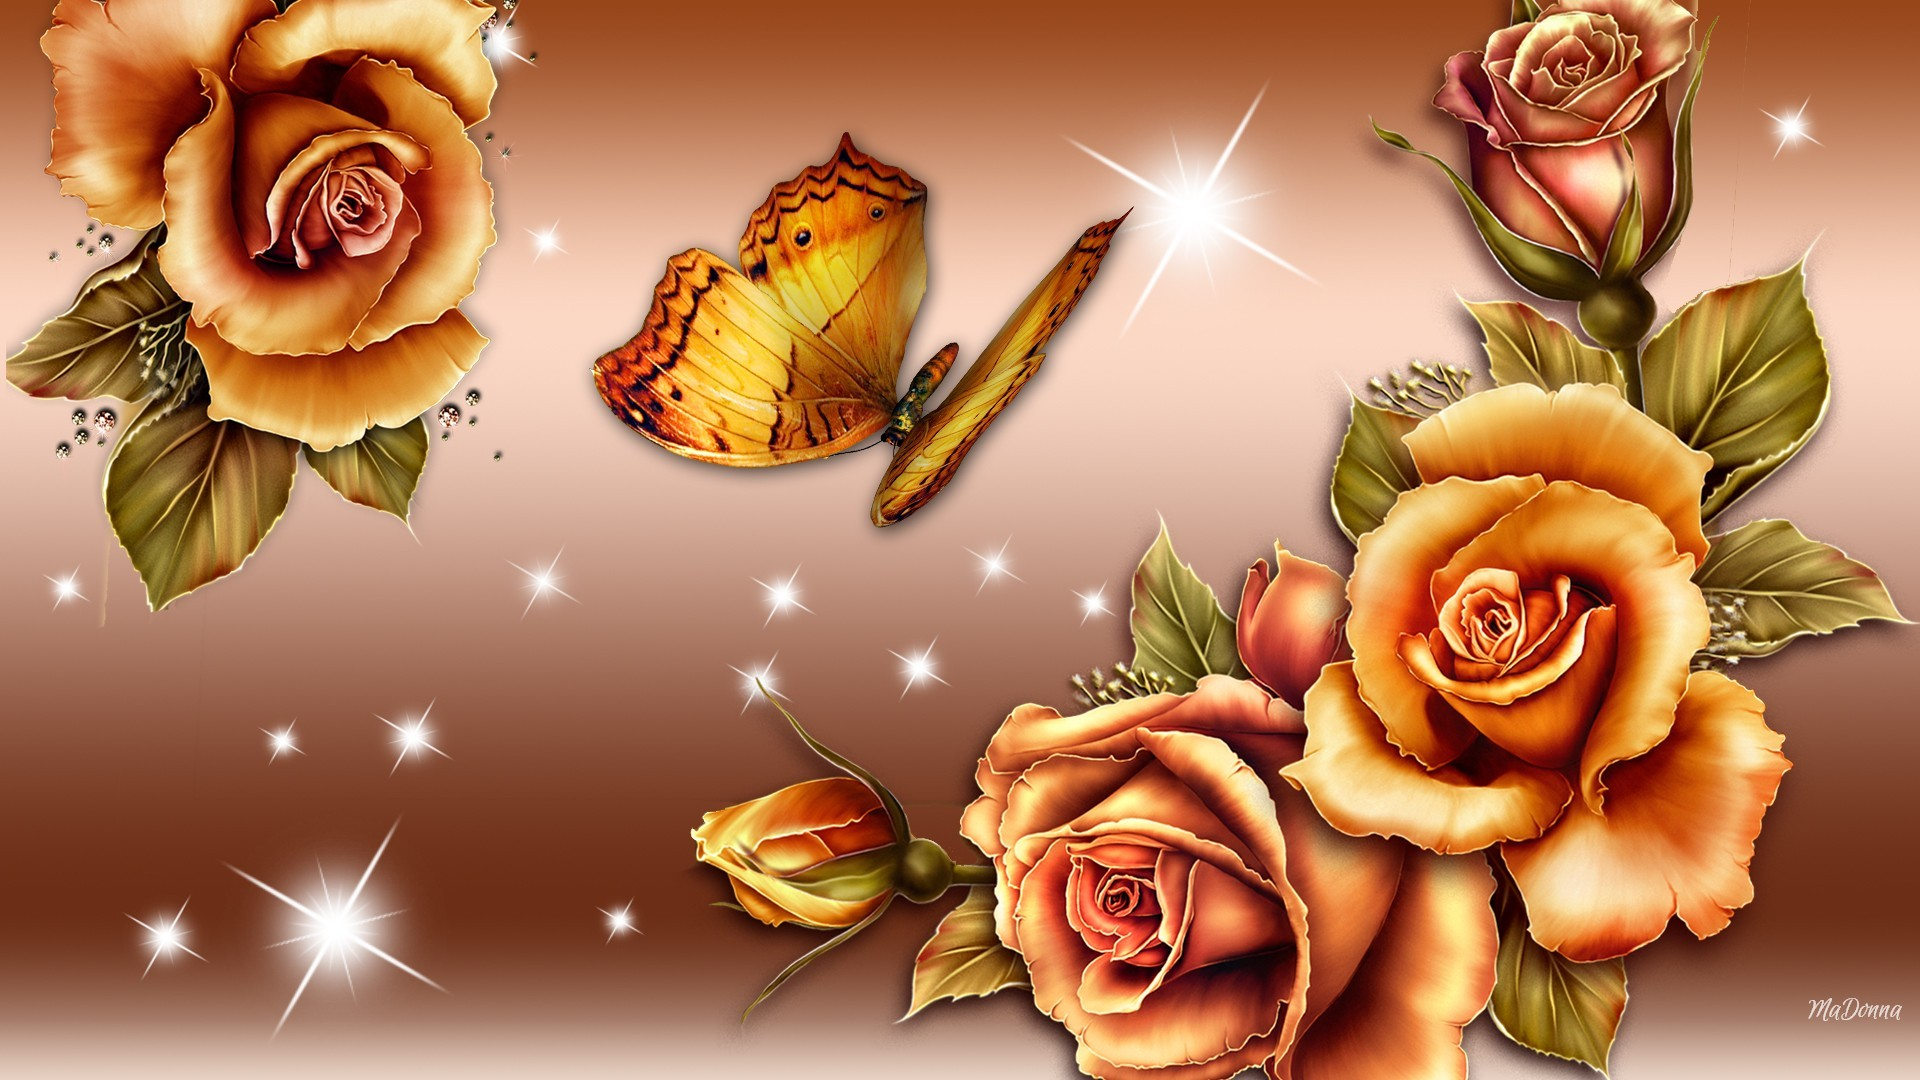 Rose And Butterfly Wallpaper 57 Pictures 1920x1080